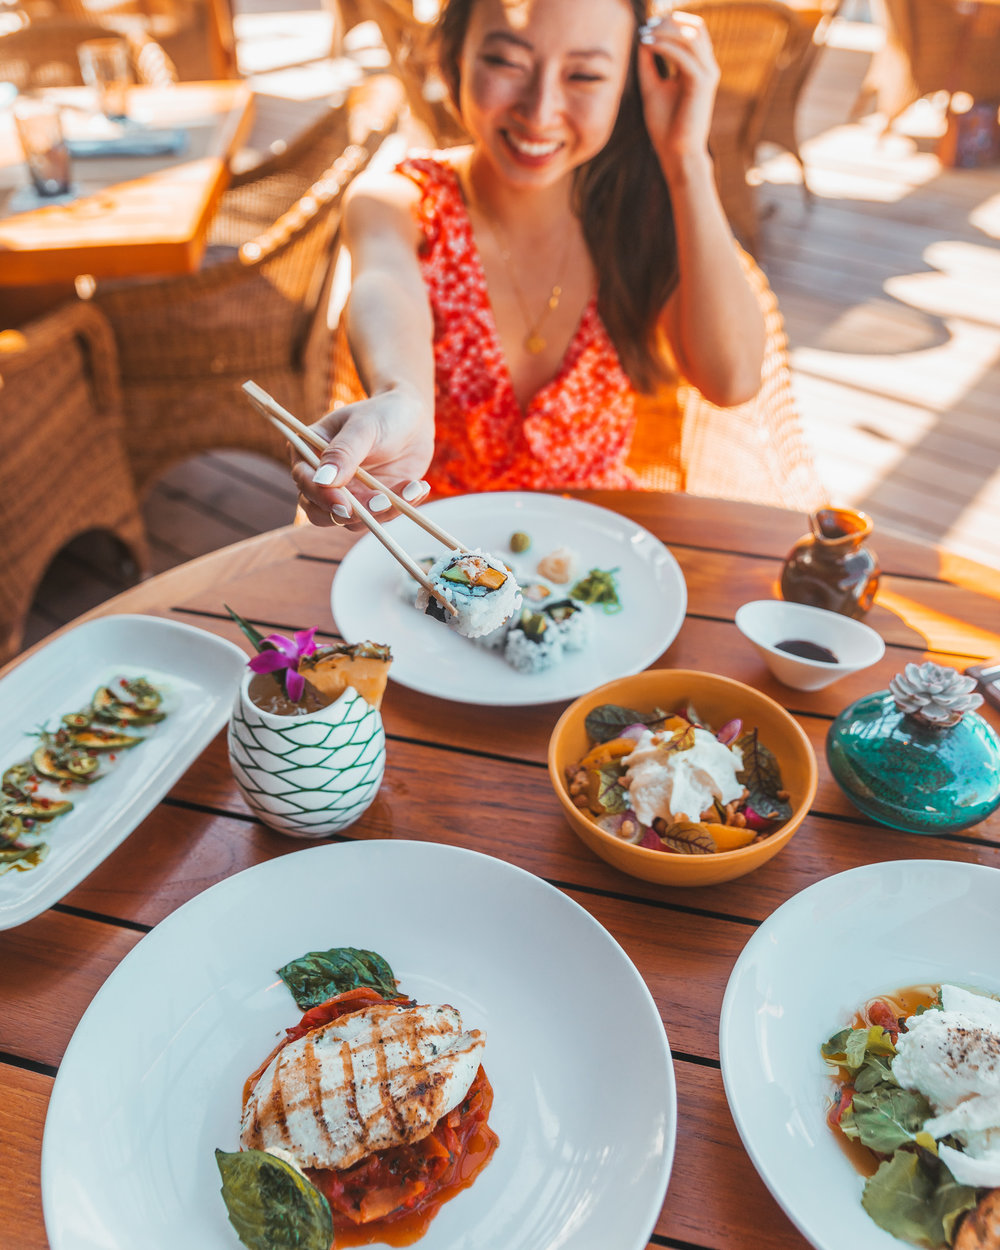 Lunch at Beach Tree Restaurant // A Luxury Stay on the Big Island: Four Seasons Resort Hualalai // #readysetjetset #hawaii #bigisland #luxuryhotels #beachresorts #usa #travel